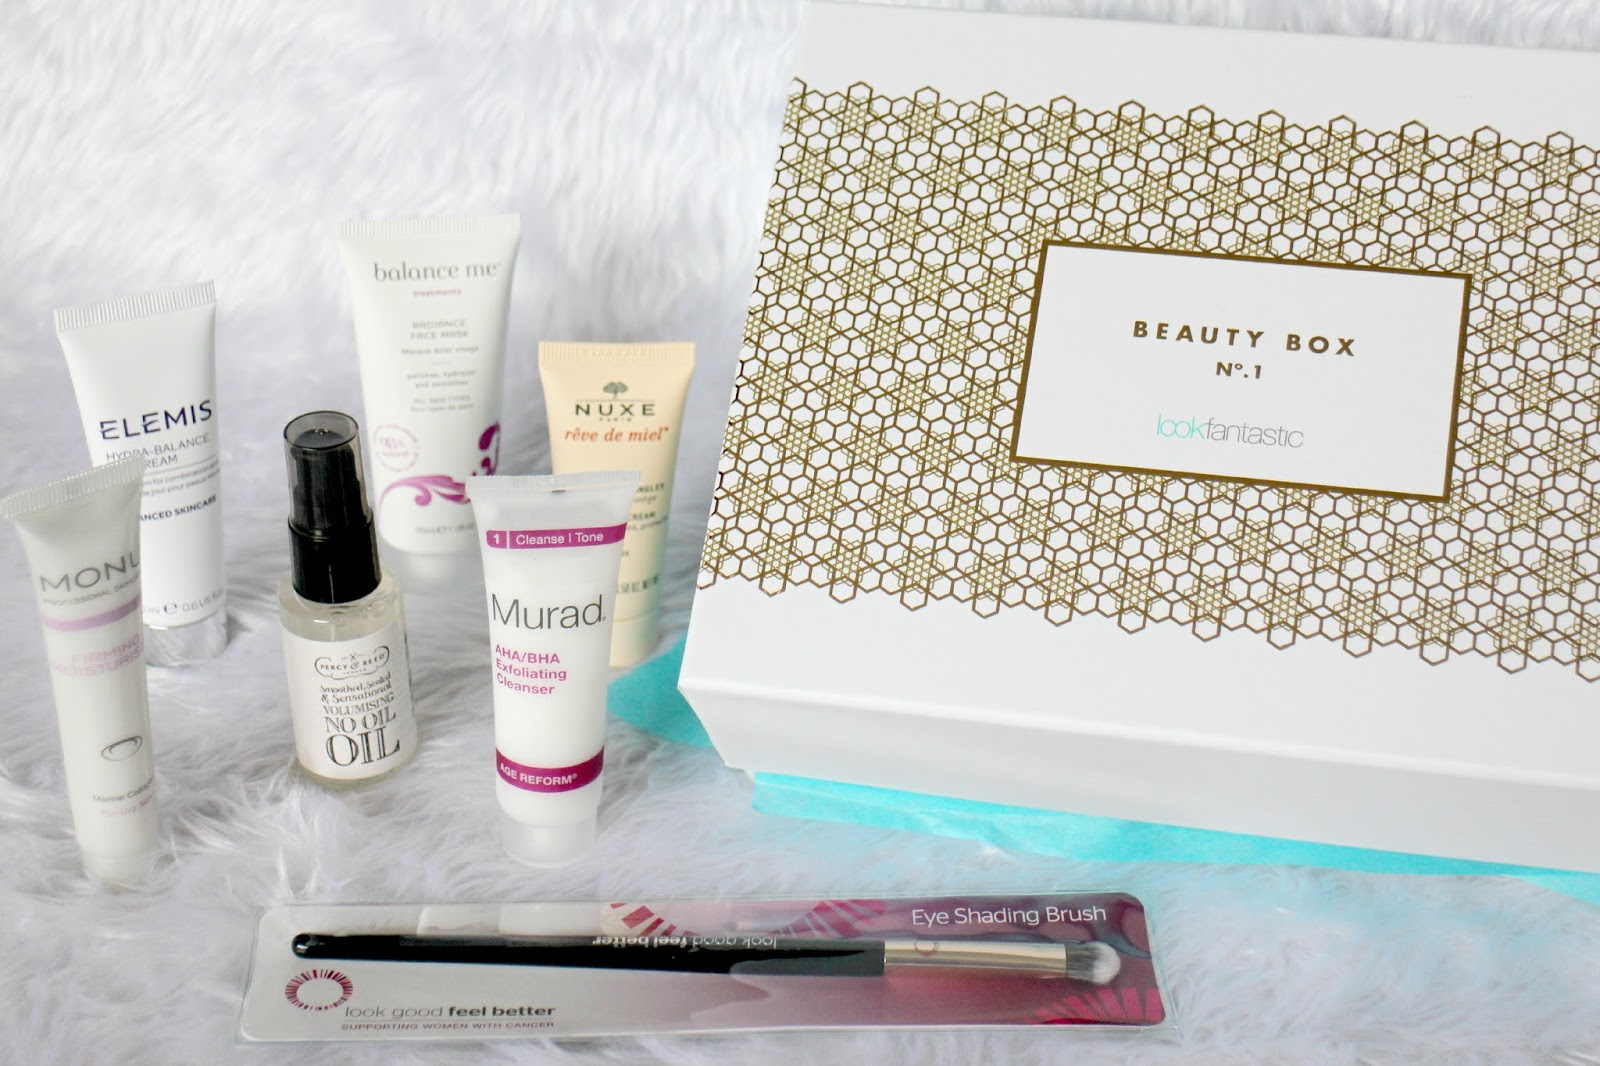 Look Fantastic Beauty Box Review Blog